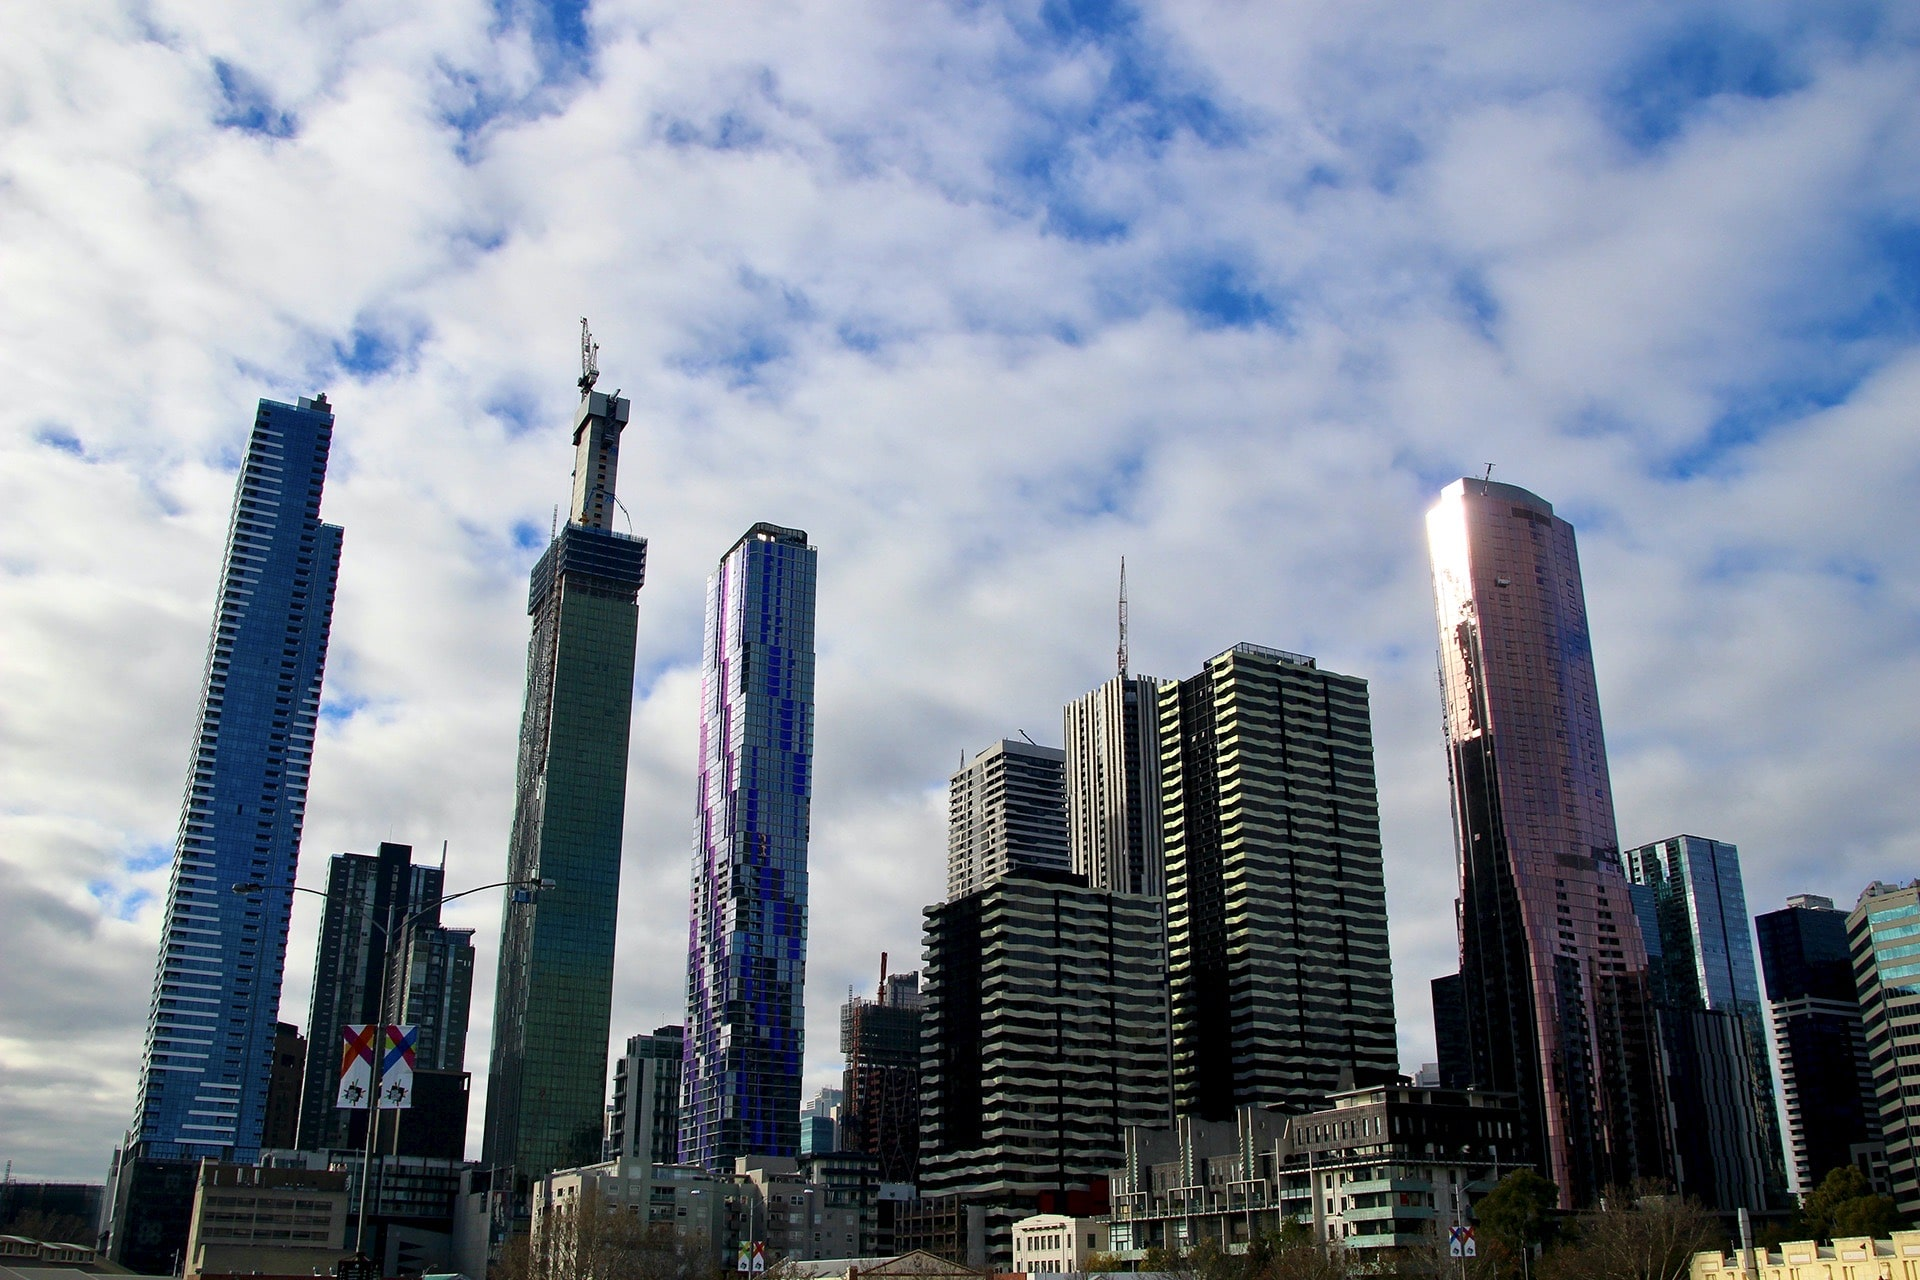 Buildings de Melbourne Australie